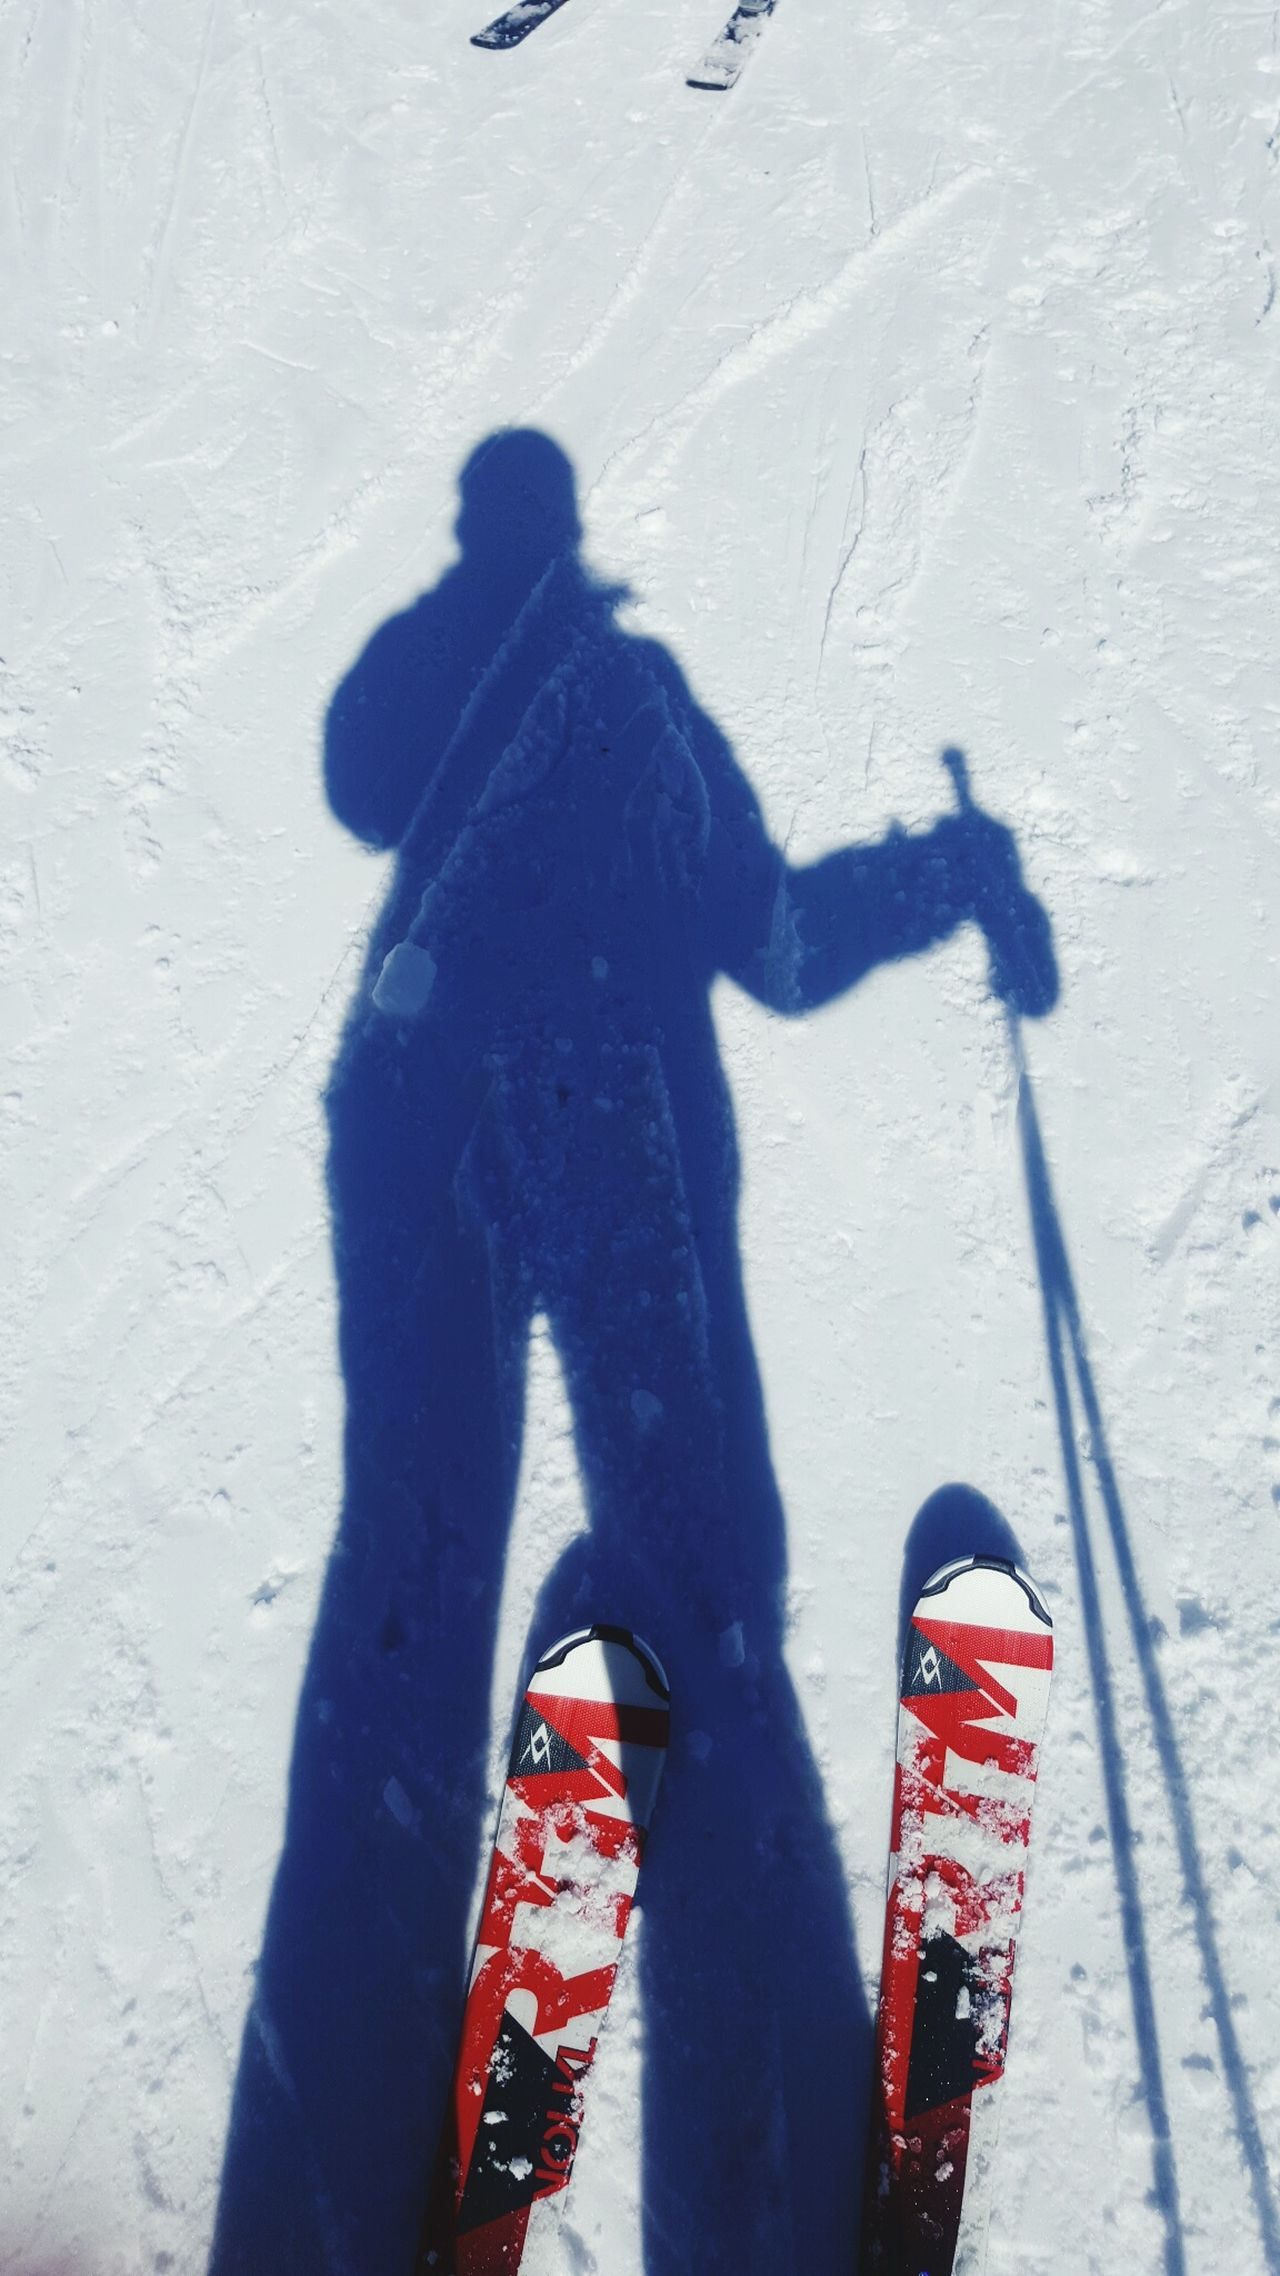 ski fun shadow light photo speed breath Shadow Sunlight One Person Leisure Activity Cold Temperature Snow